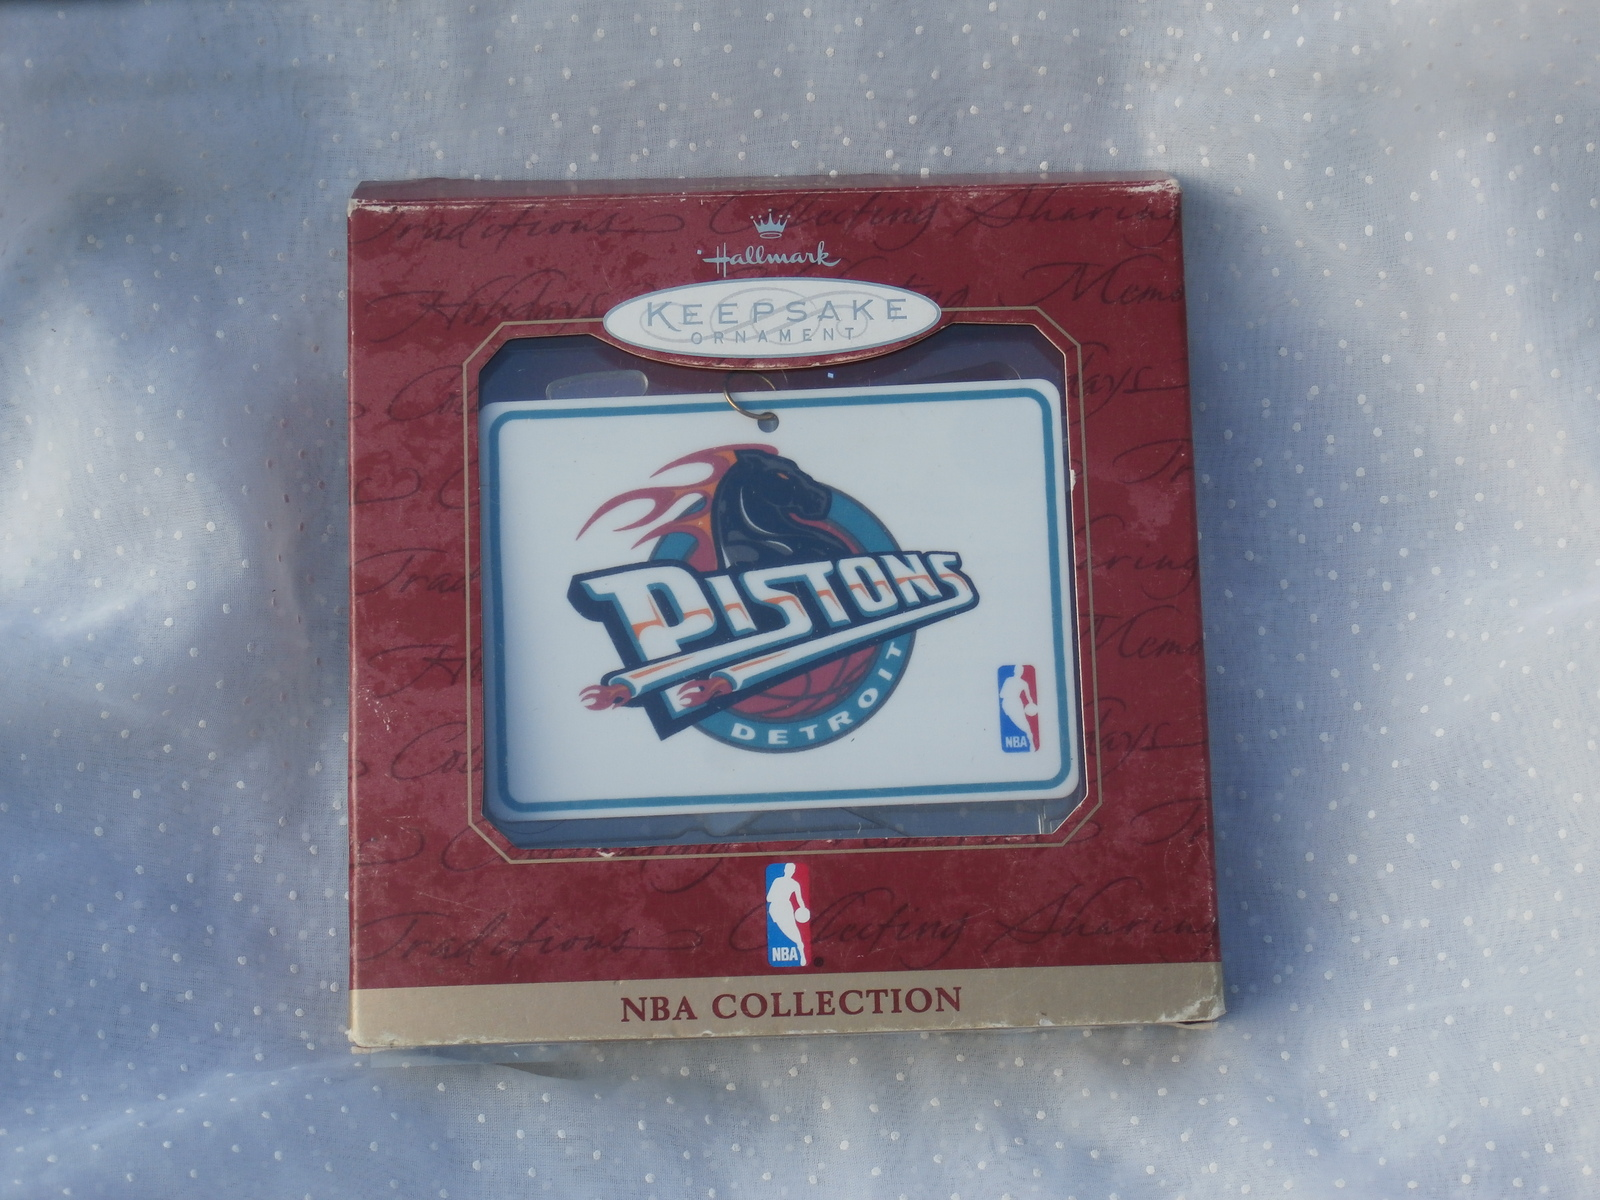 Detroit Pistons Hallmark Keepsake Ornament 1997 NBA